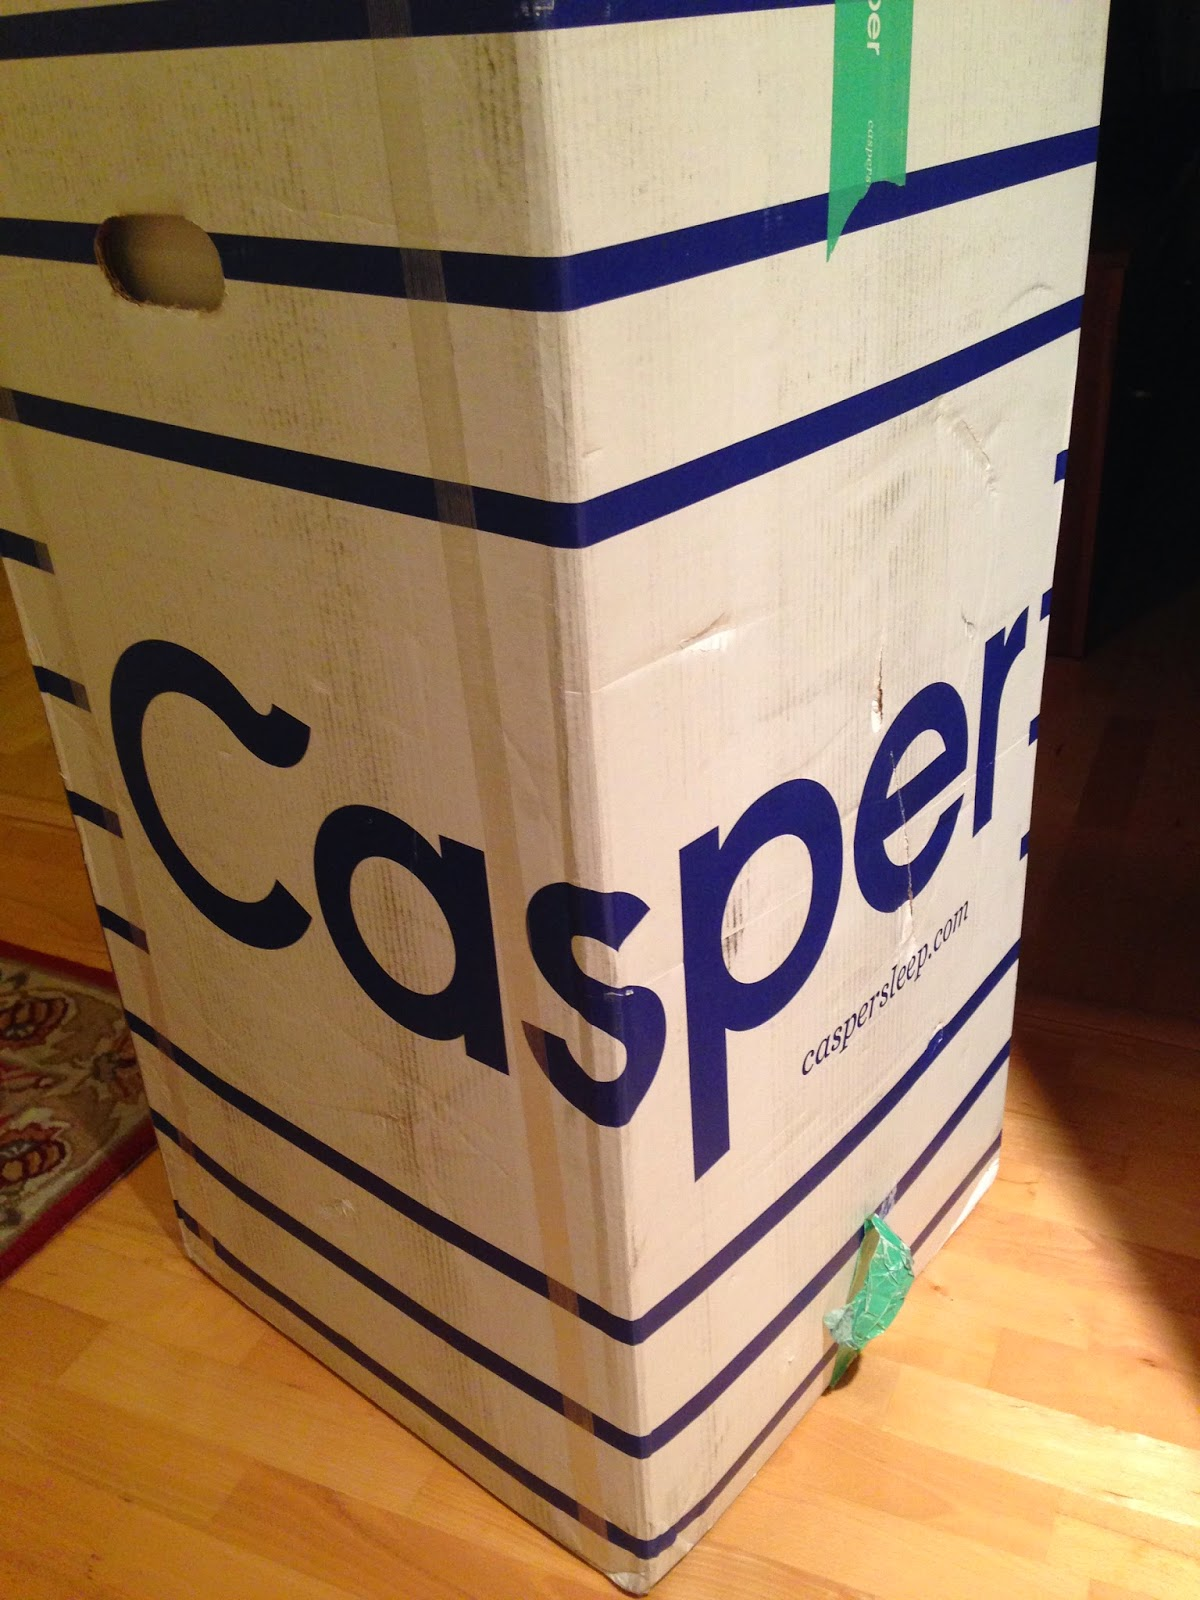 Life In The Great Midwest: Innovation - A Bed in a Box From Casper